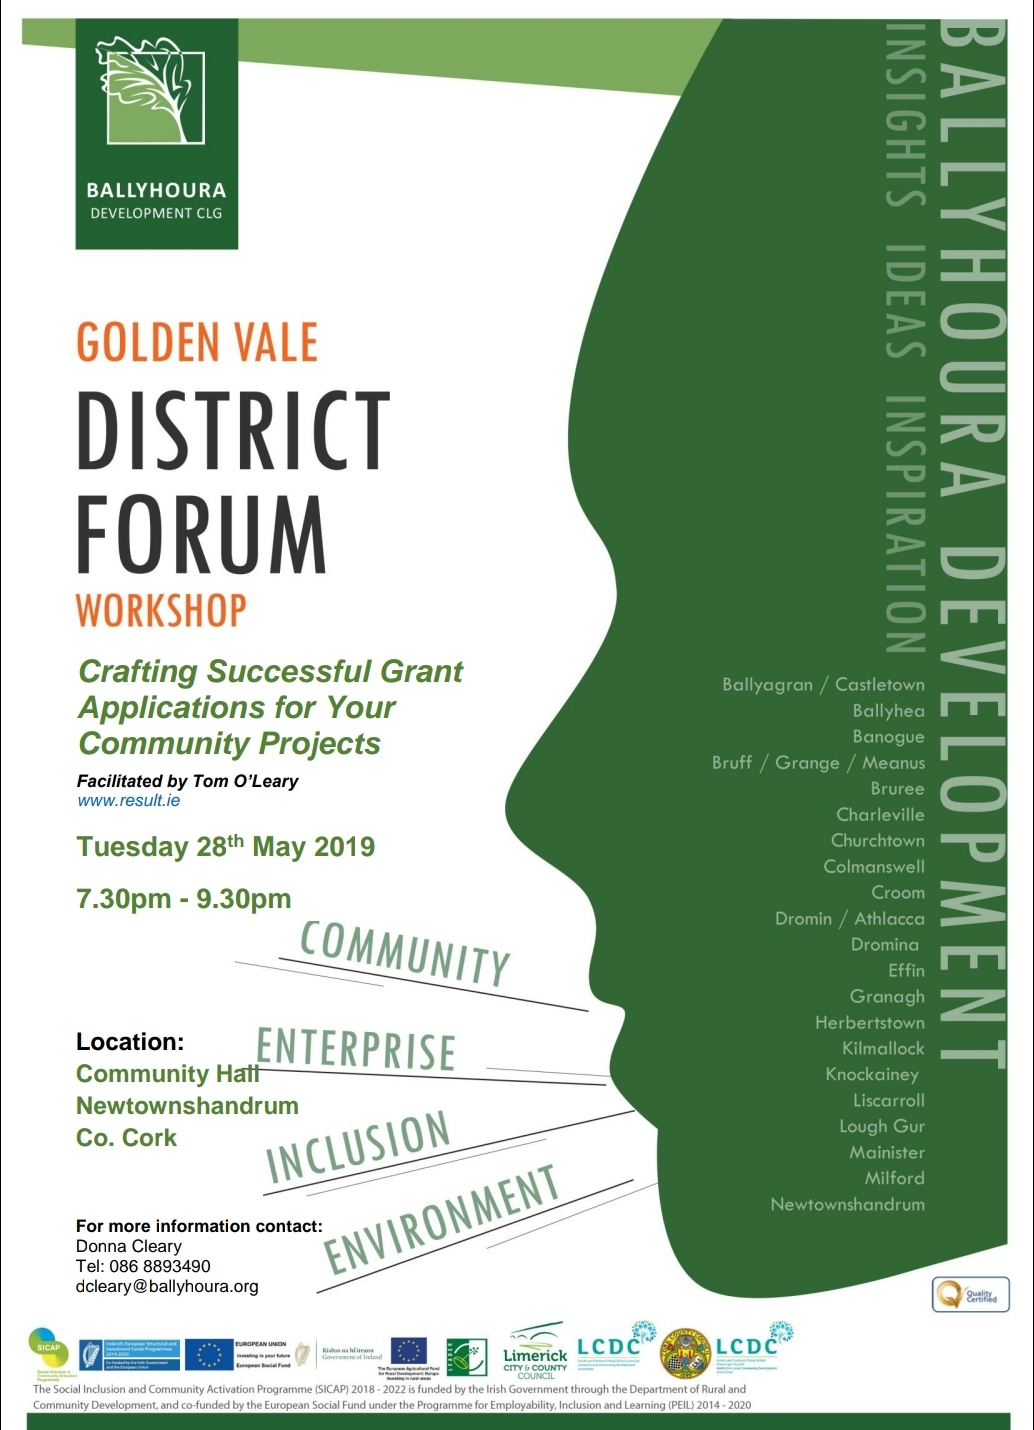 GV District Forum 28th May 2019